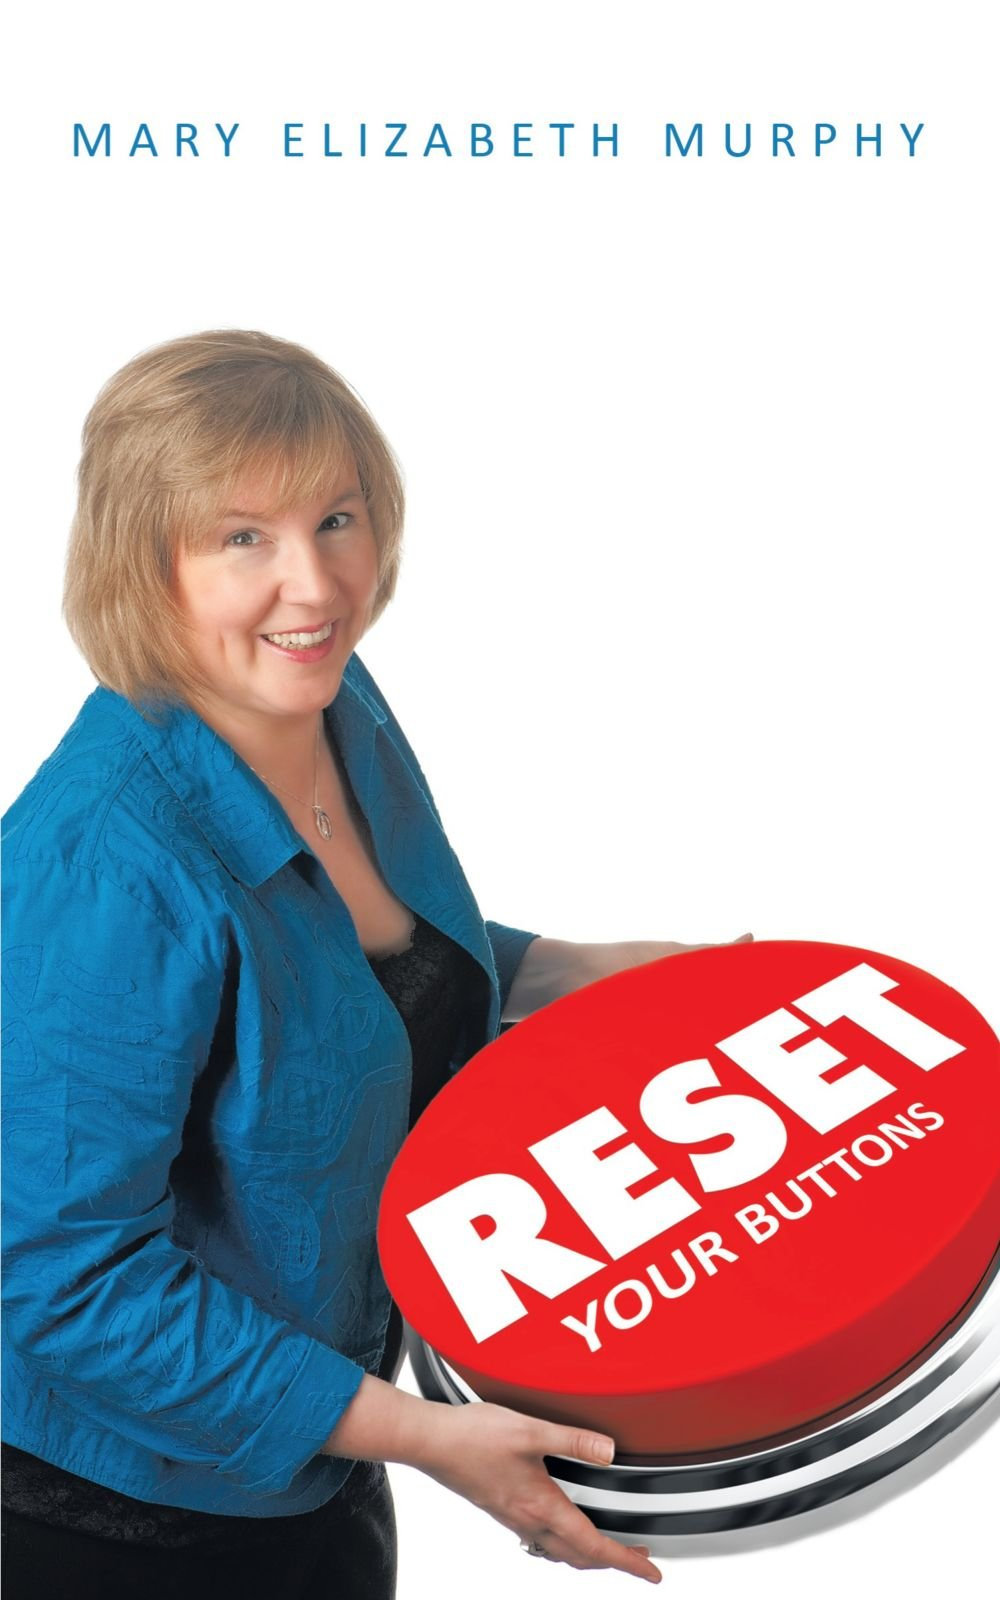 Reset Your Buttons Mary Elizabeth Murphy.jpg